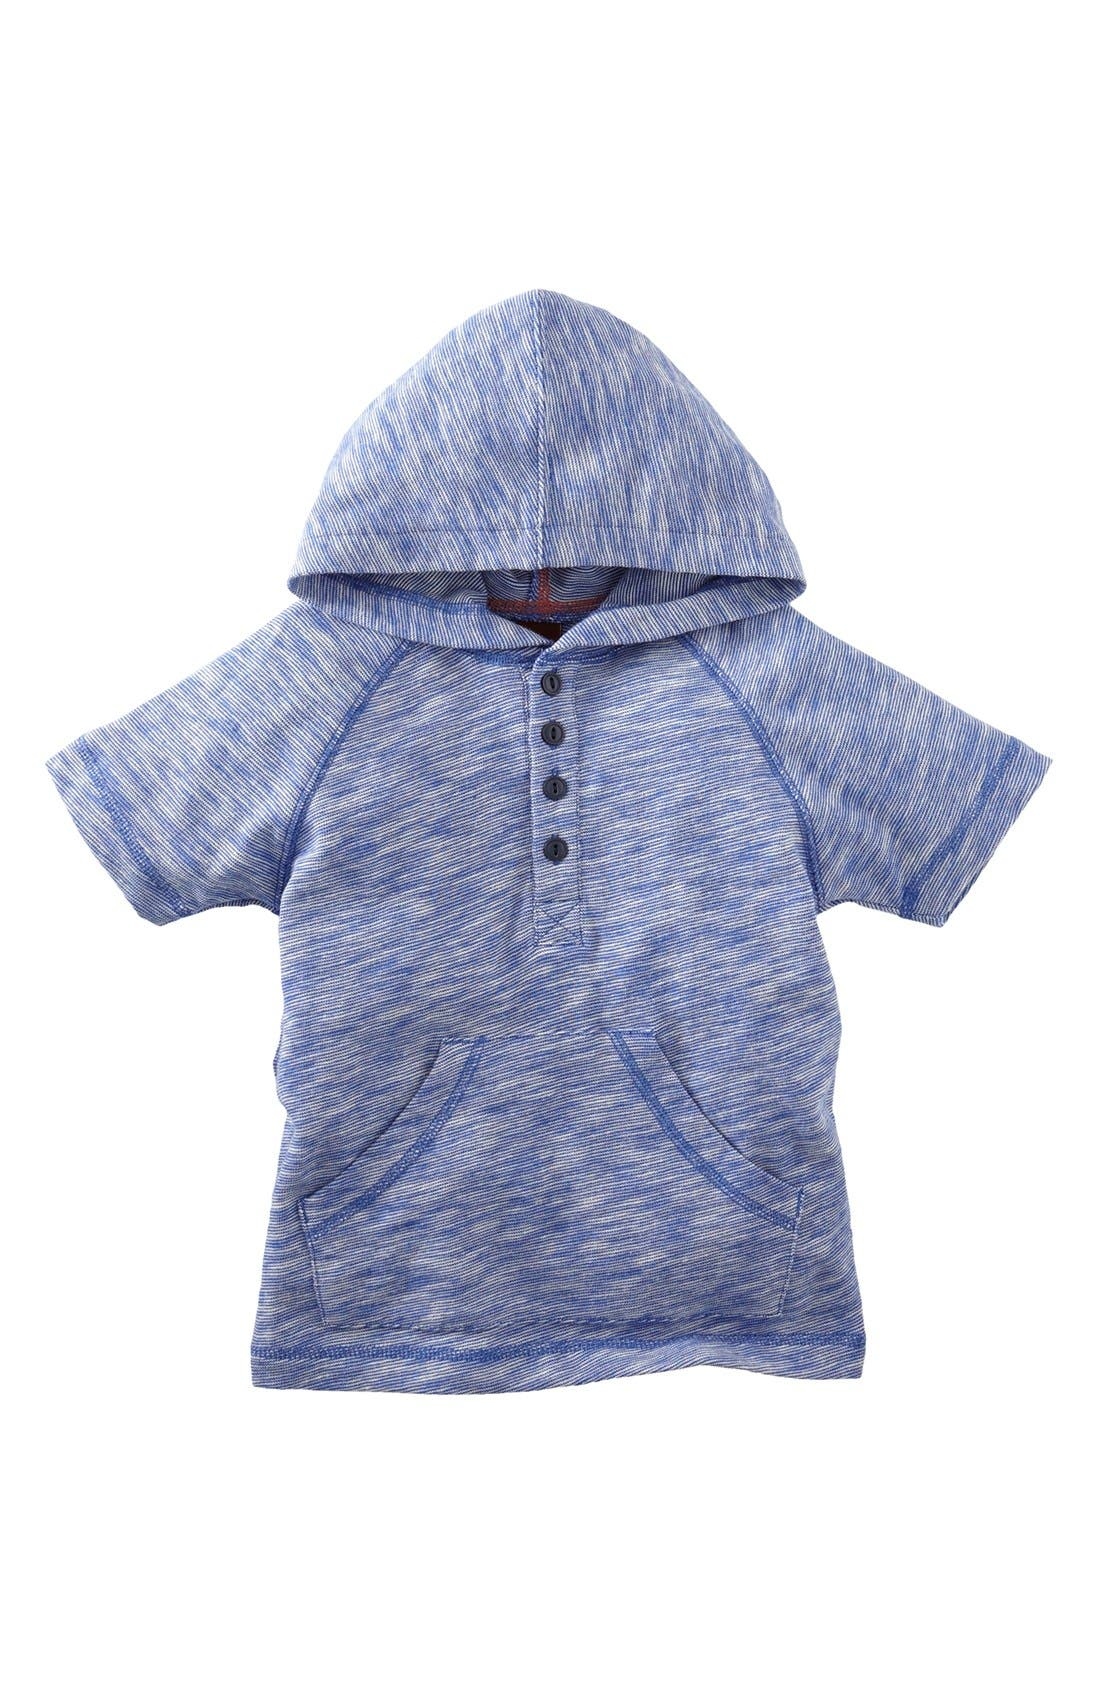 Main Image - Tea Collection 'End-on-End' Short Sleeve Hoodie (Toddler Boys)